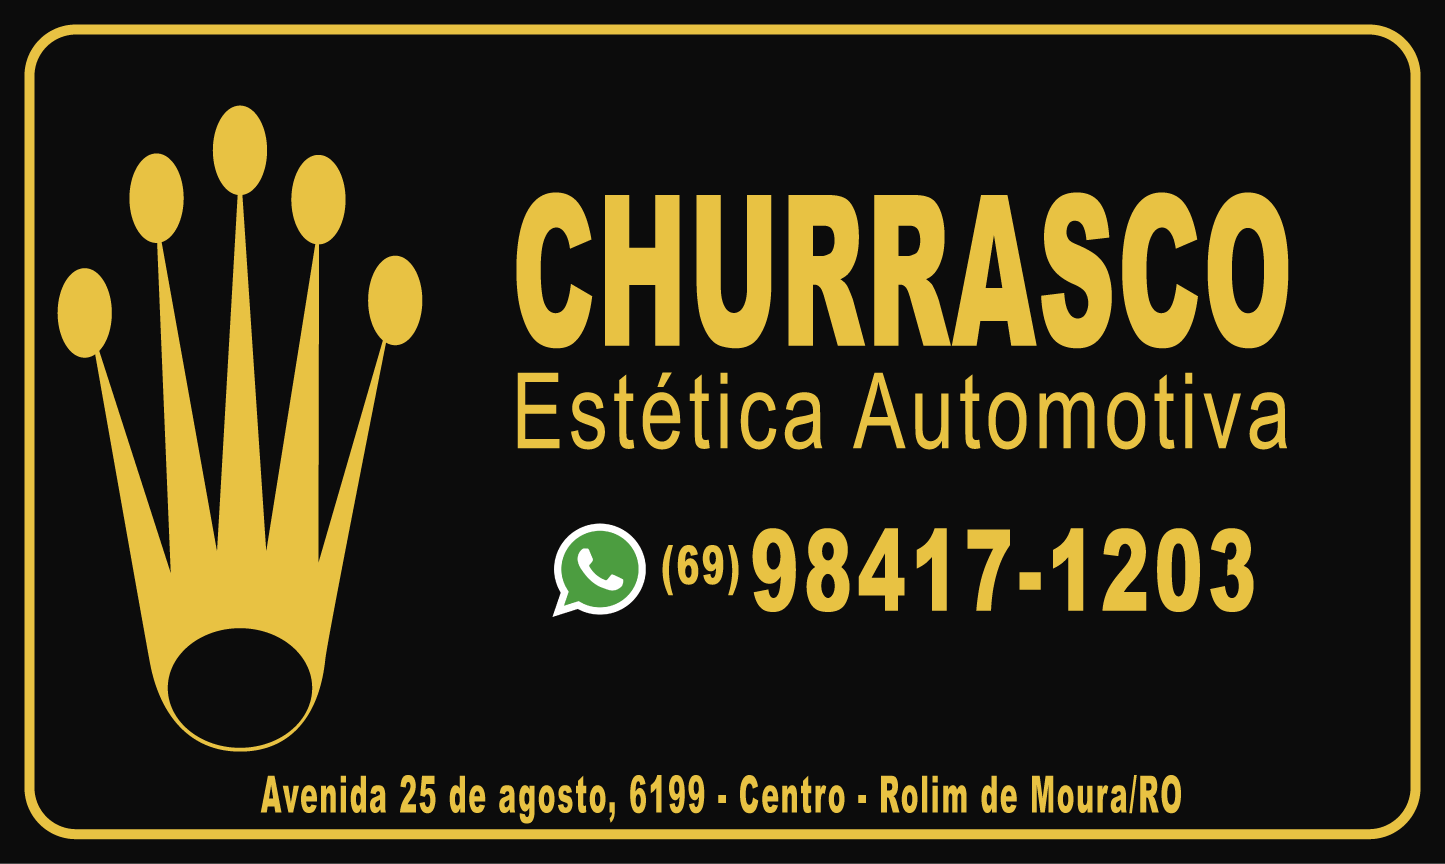 Churrasco Estética Automotiva